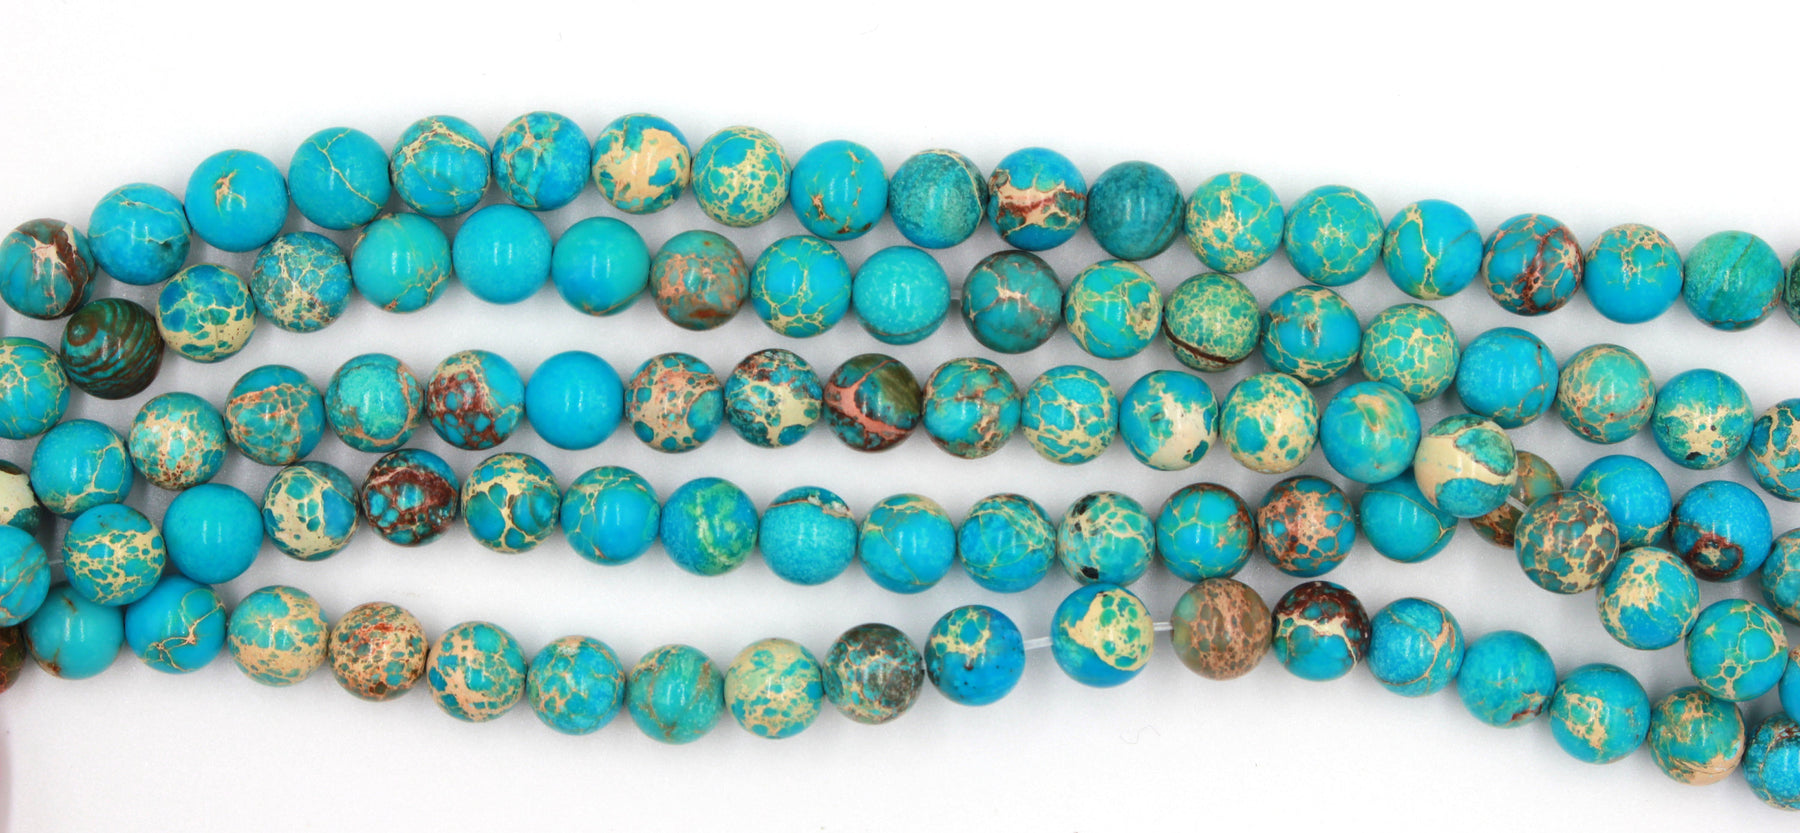 8mm light blue jasper, round, glossy, 1 strand, 16 inches, approx. 48 beads.